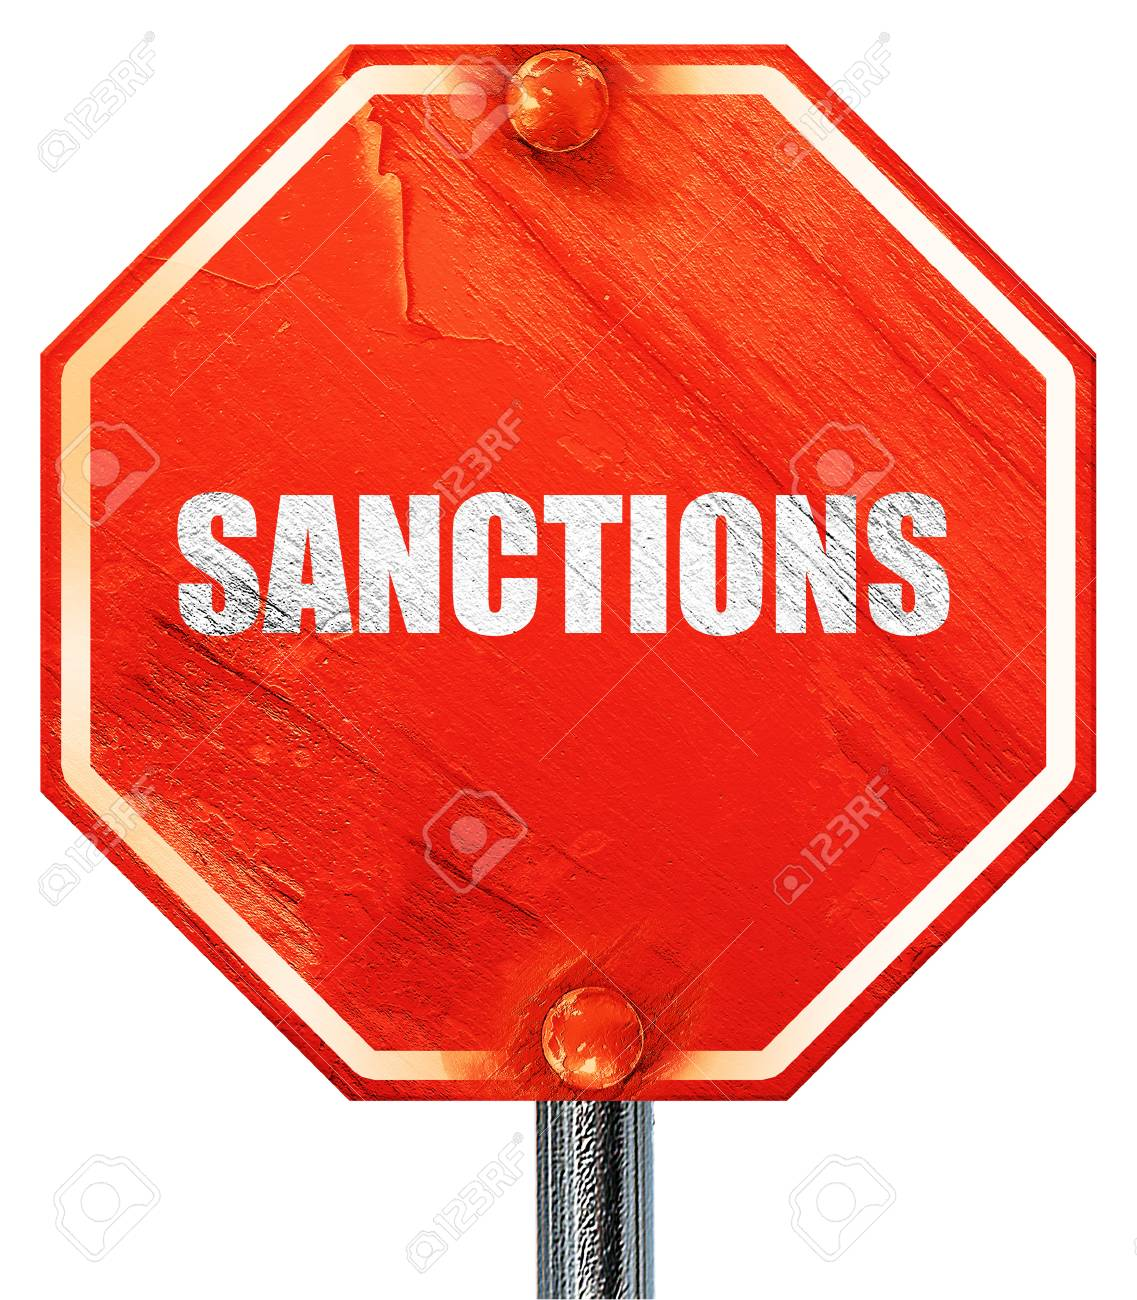 sanctions, 3D rendering, a red stop sign - 57173414